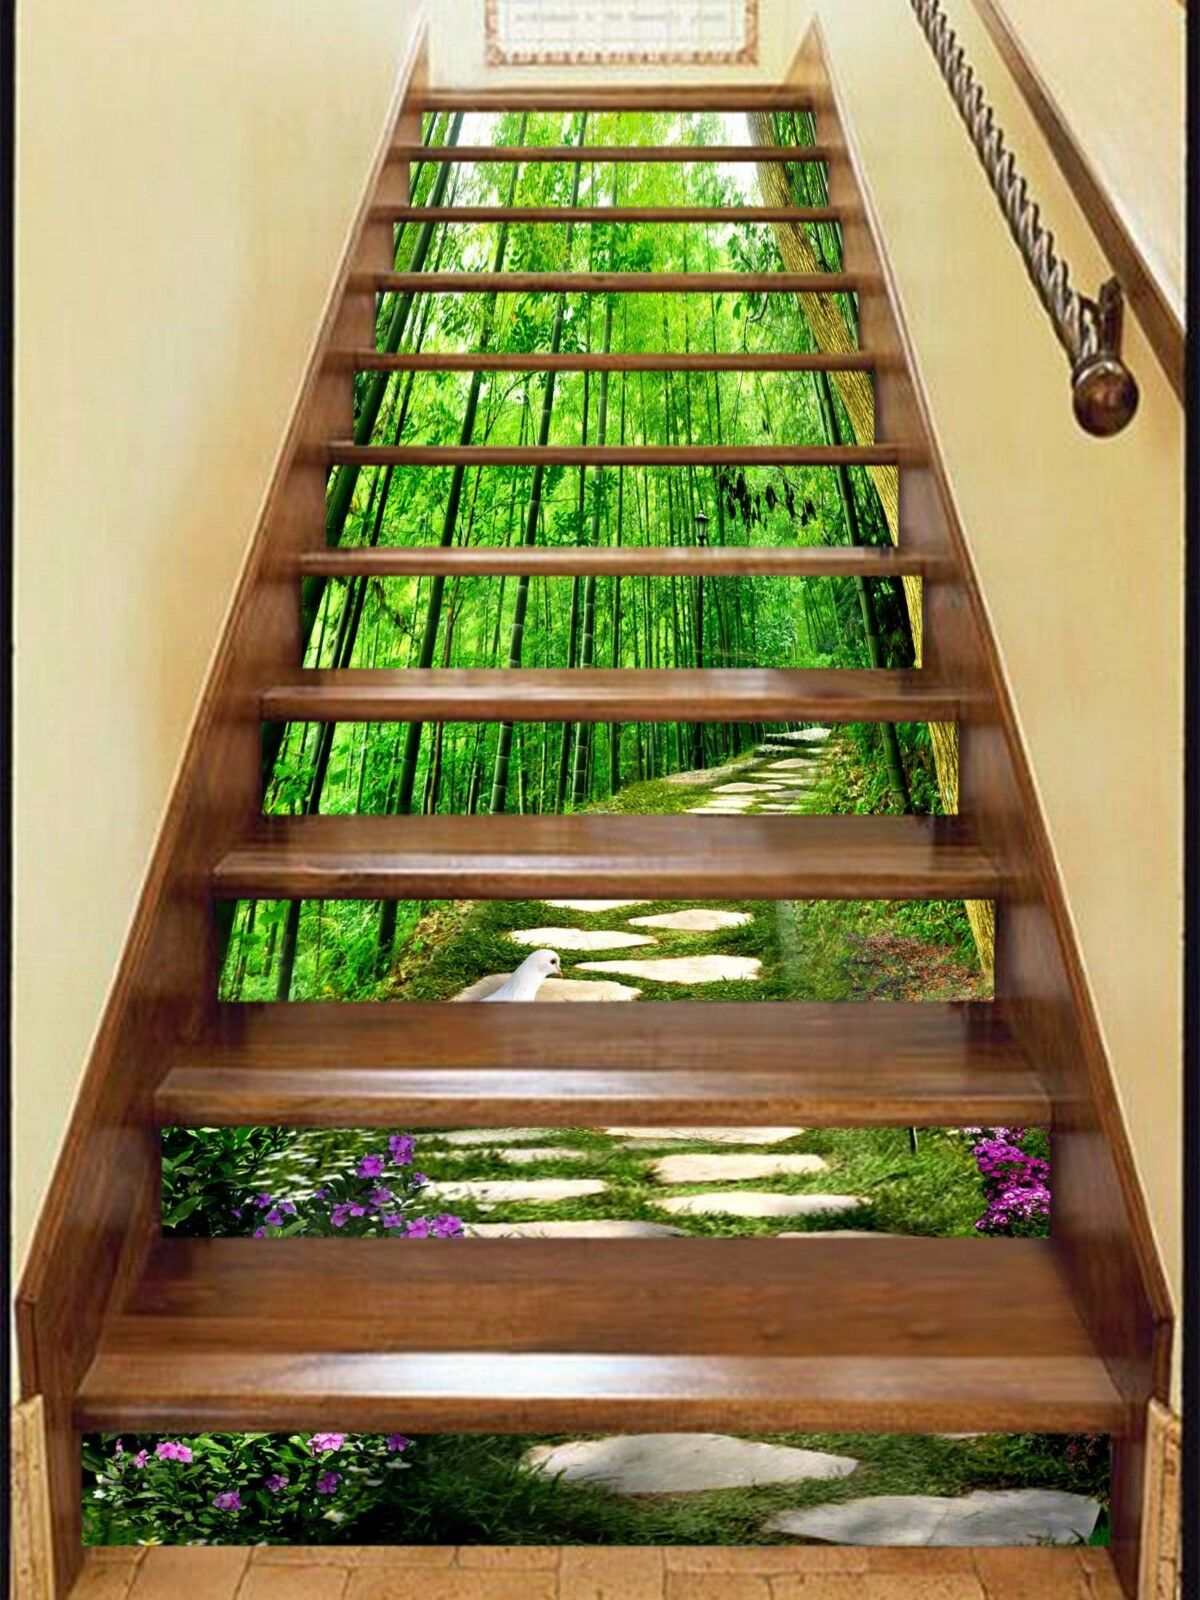 3D Forest path 335 Stair Risers Decoration Photo Mural Vinyl Decal Wallpaper UK